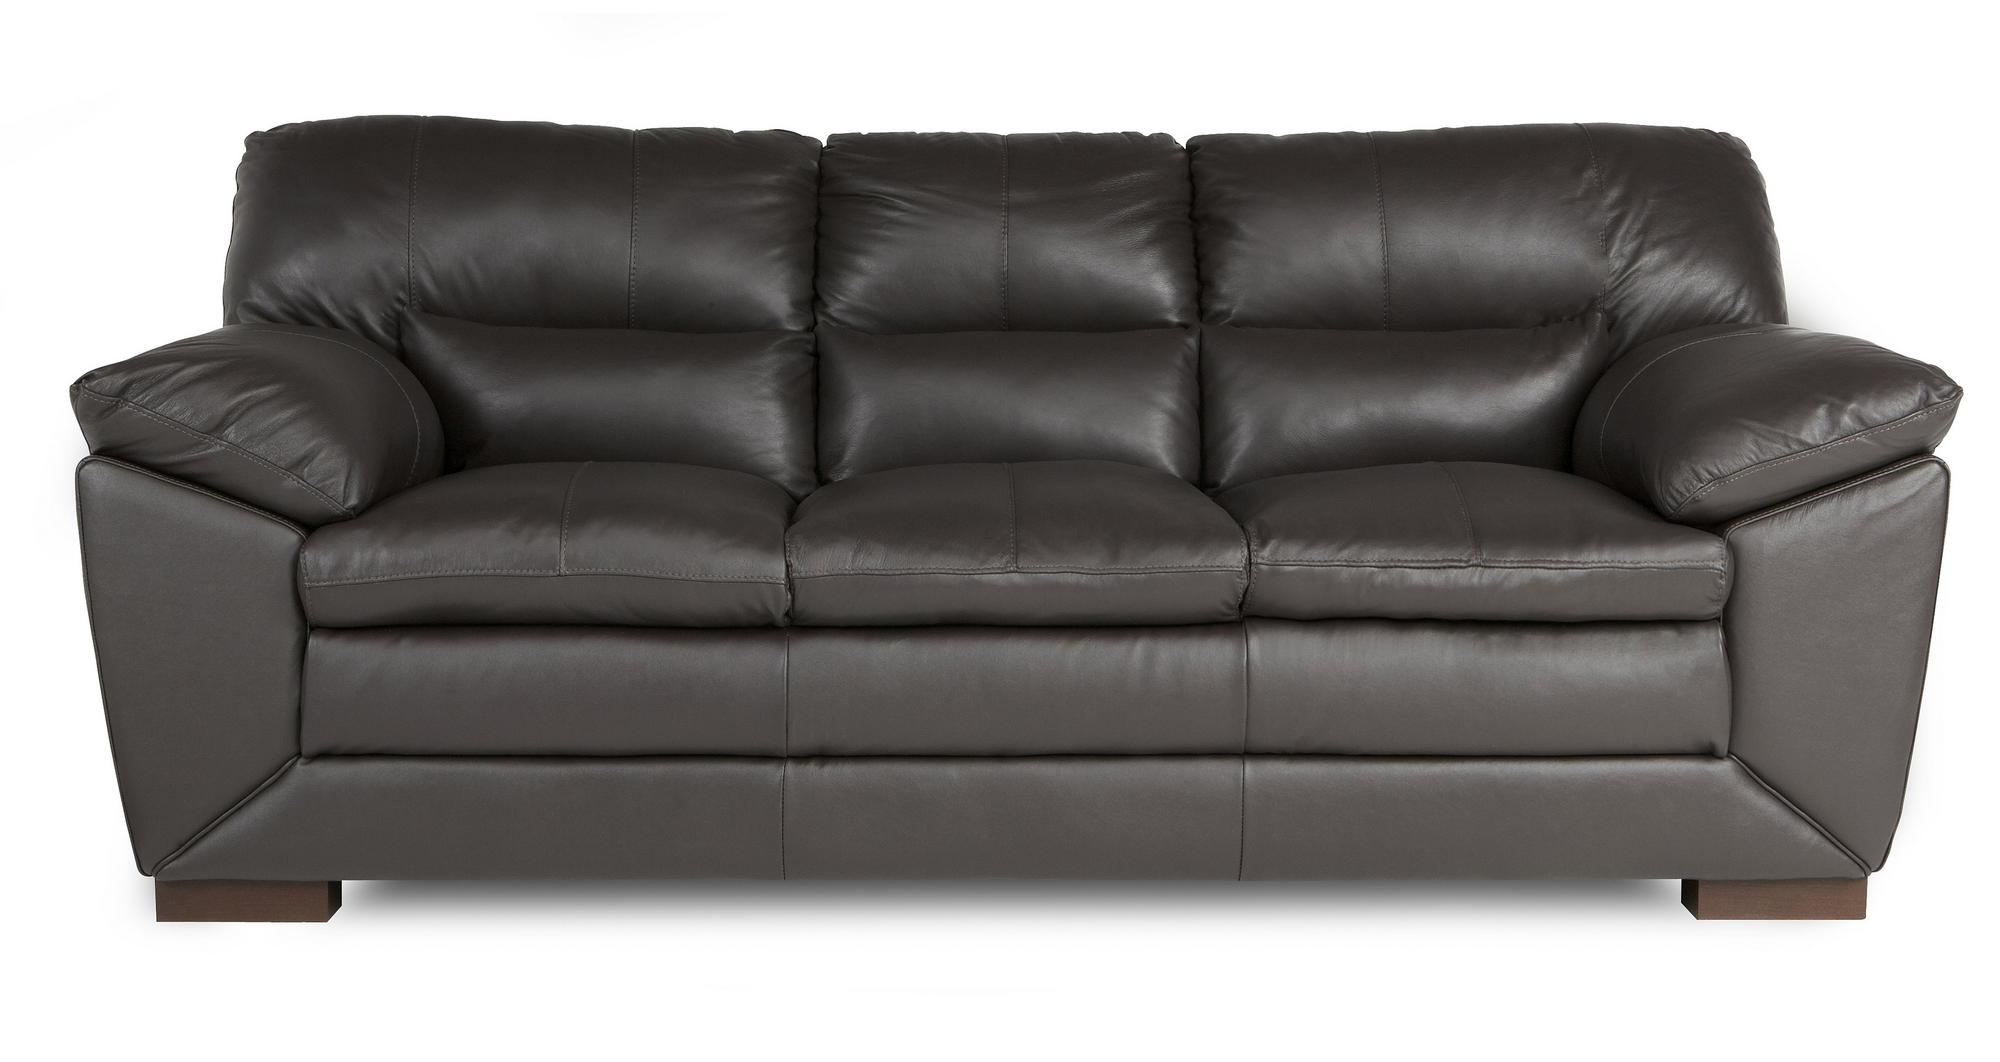 Leather Sofa On Ebay Best House Interior Today